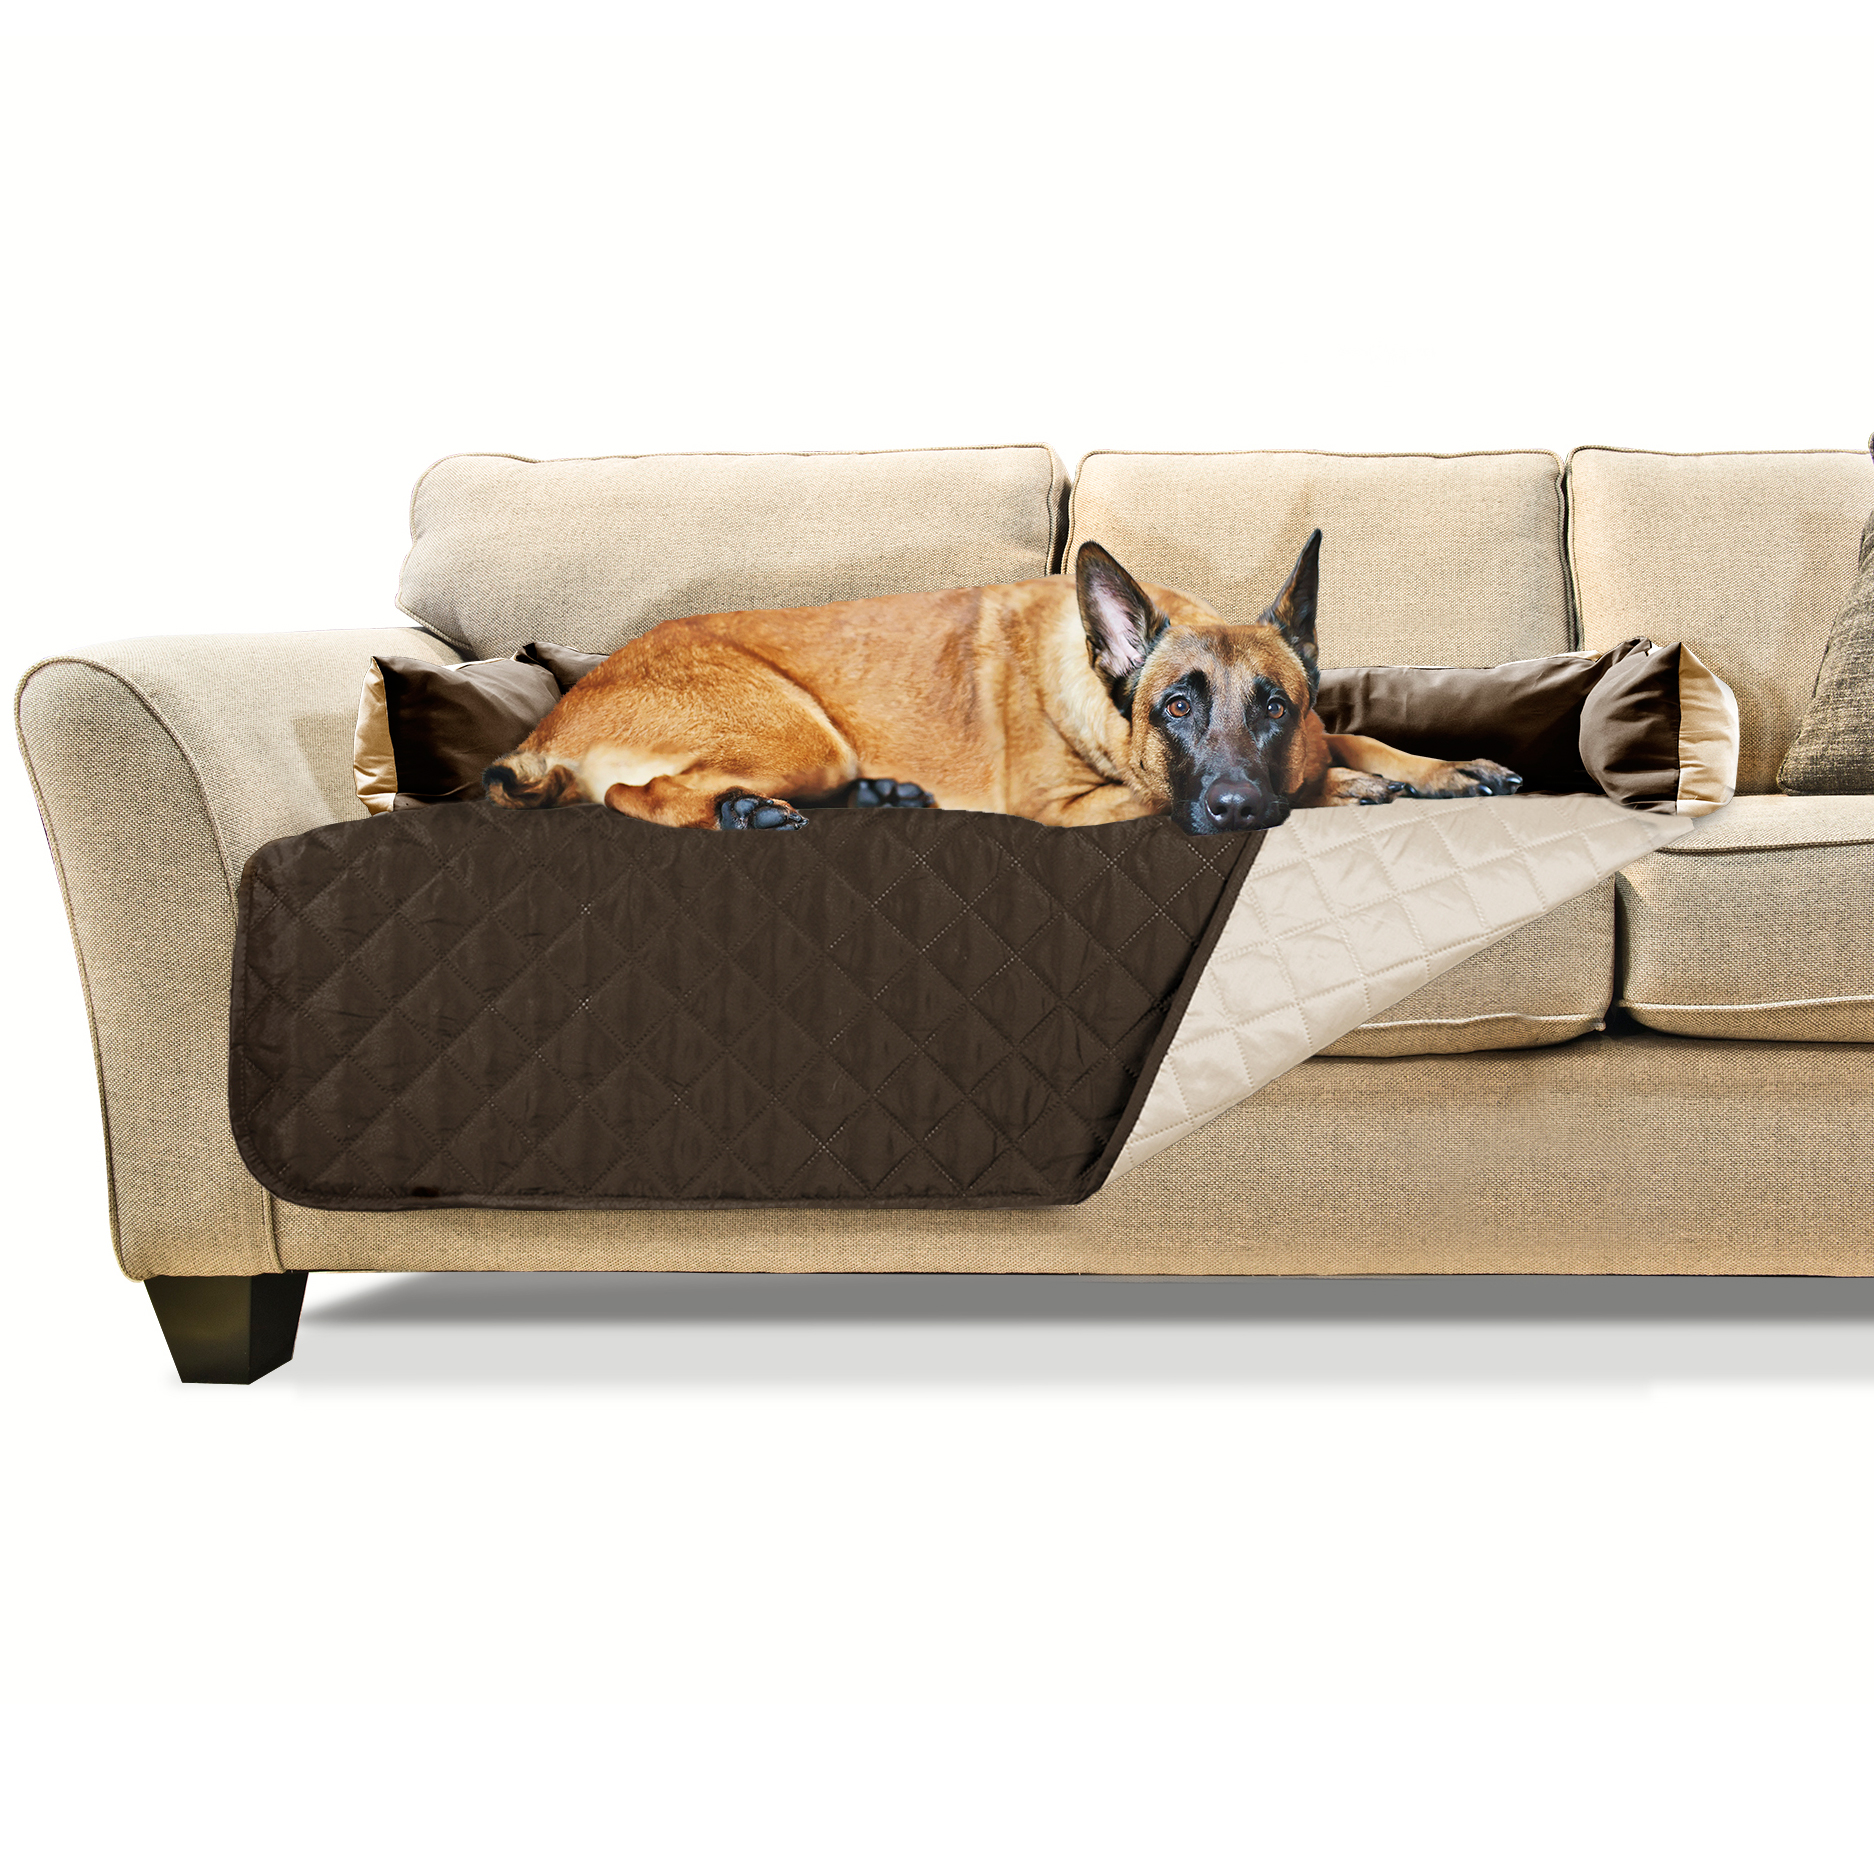 furhaven sofa buddy dog bed pet bed furniture cover ebay. Black Bedroom Furniture Sets. Home Design Ideas